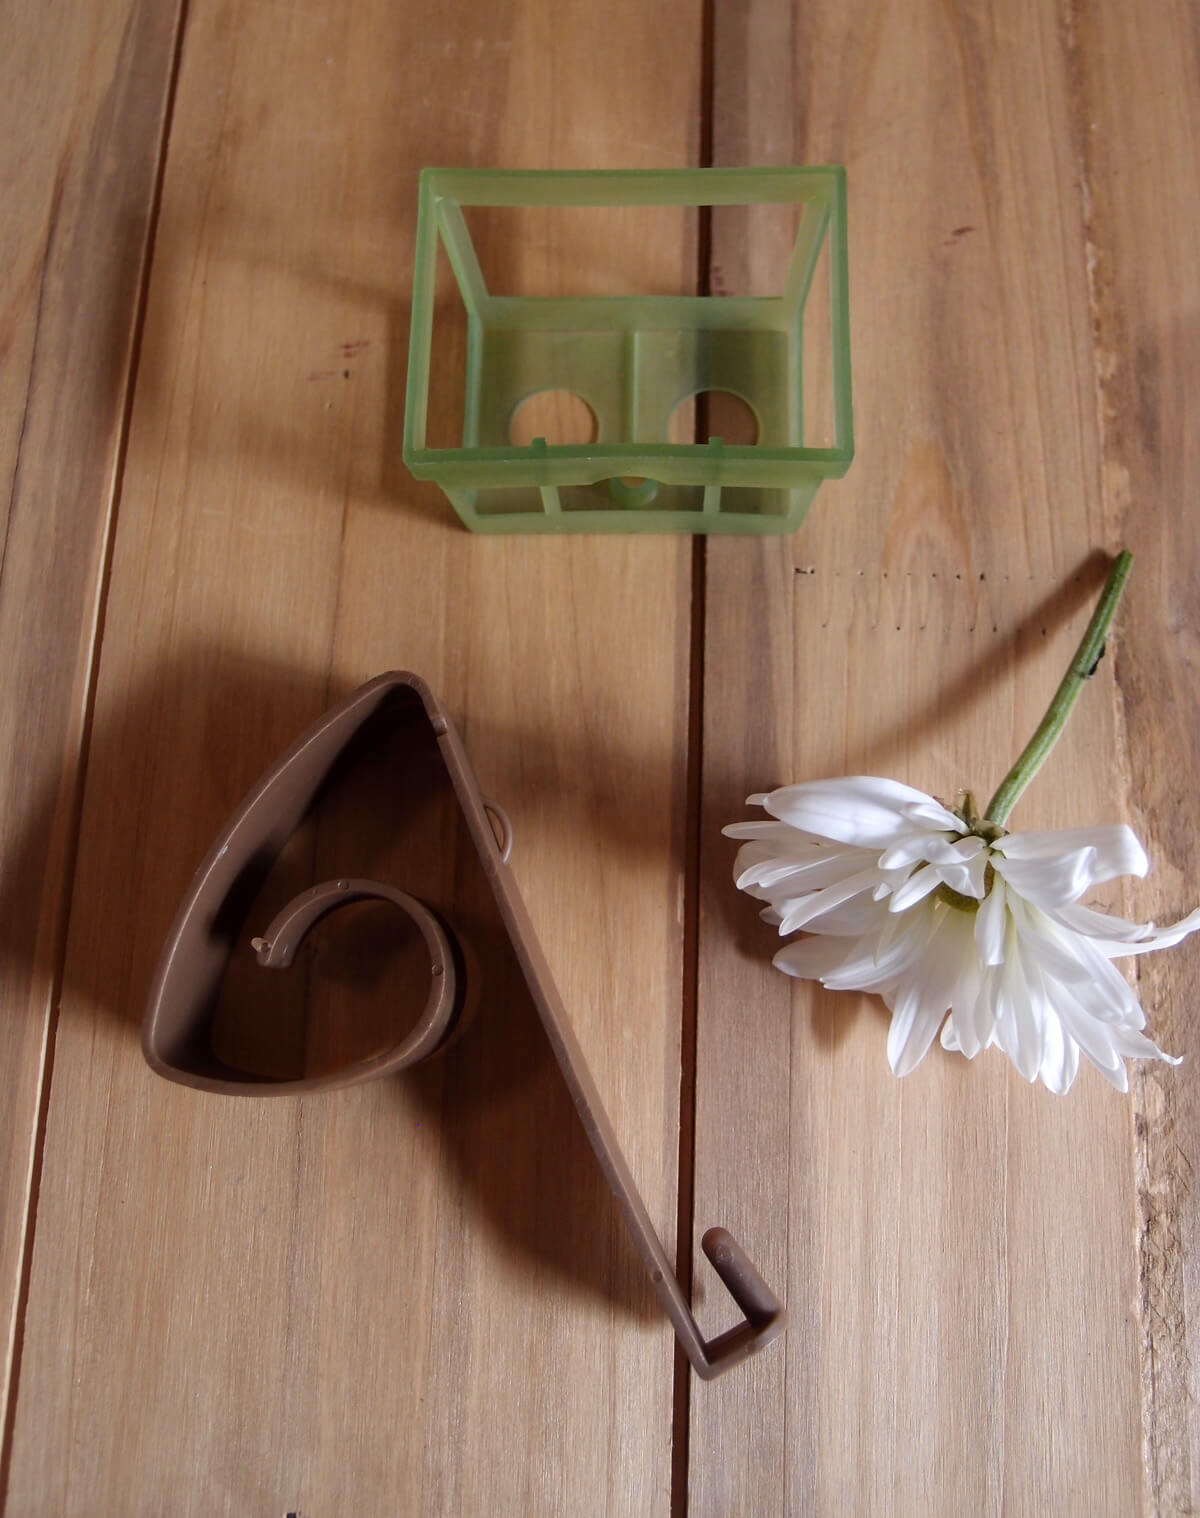 24 Small Pew Baskets with Clips